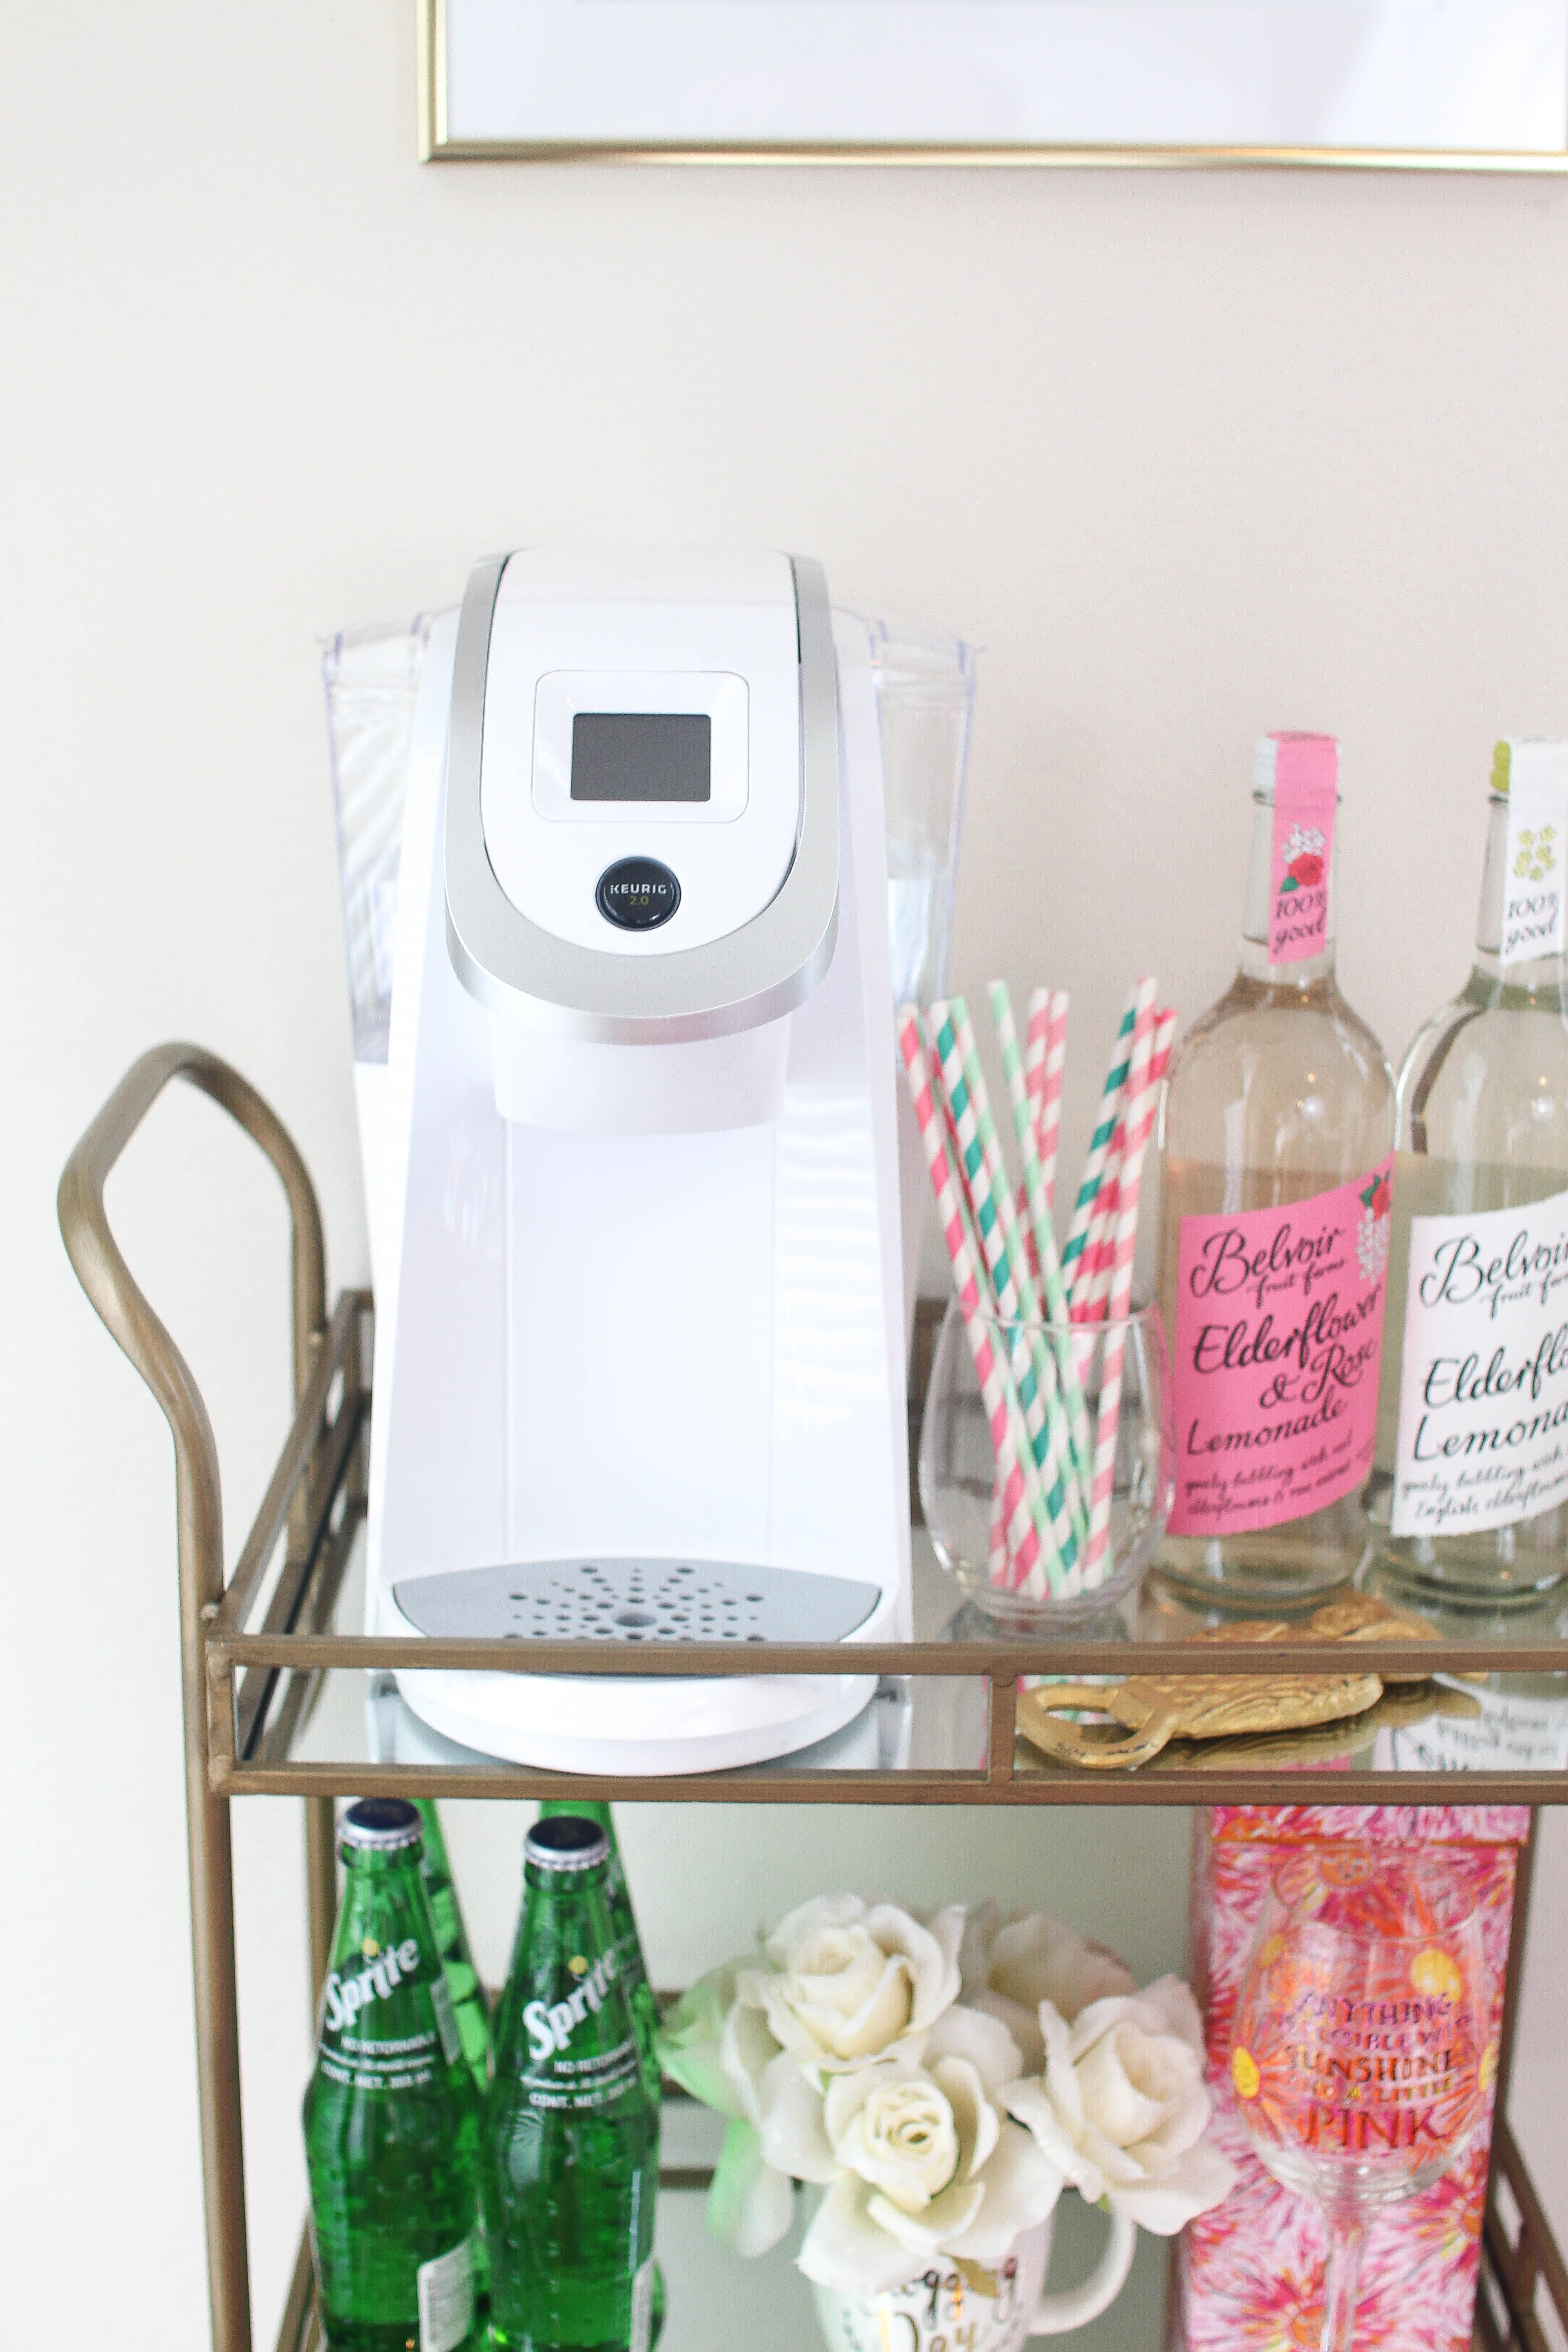 My Bar Cart + How I Easily Decorated it using photoshop! white Keurig decor and other bar cart decor. home decor by lauren lindmark on daily dose of charm